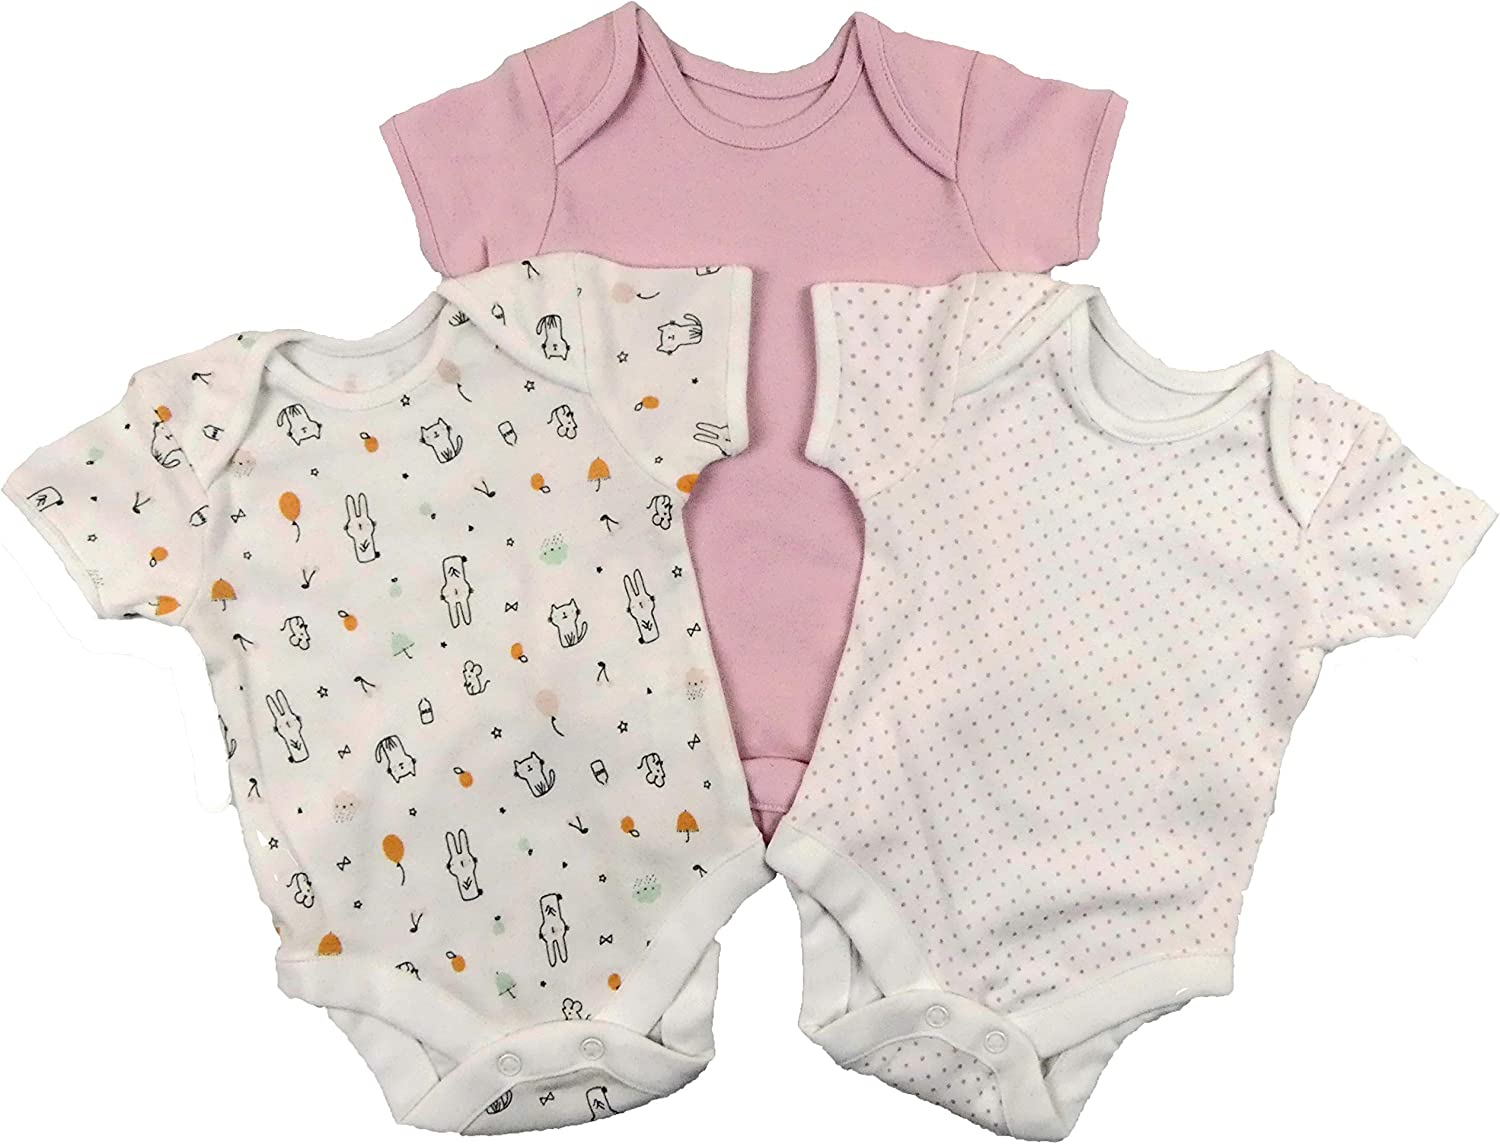 Baby Boys and Girls 3 OR 7 Pack Bodysuits Popper Vests Newborn up to 24 Months